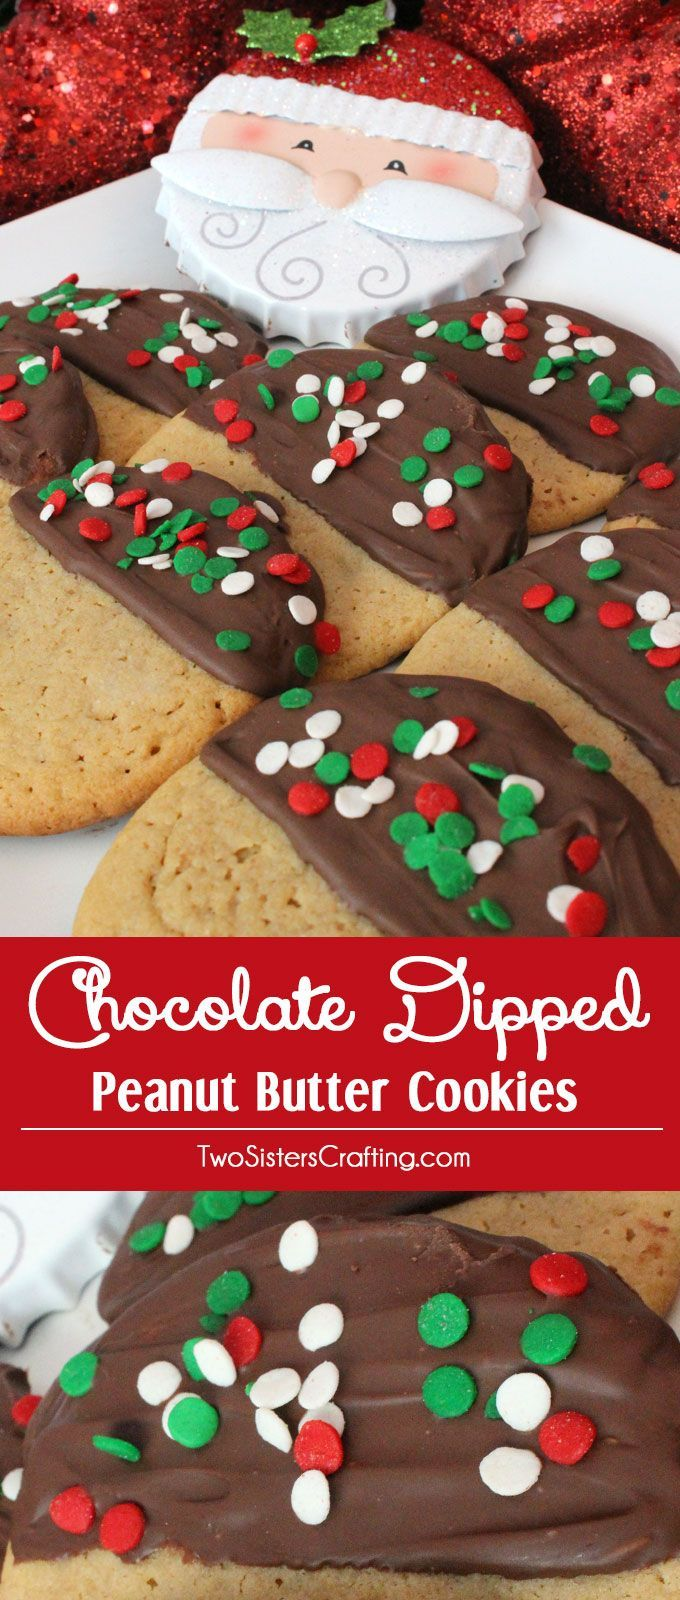 Our Chocolate Dipped Peanut Butter Christmas Cookies are super delicious, very easy to make and make a great Holiday Cookie. This yummy Christmas Dessert would also be a big hit at a Christmas Cookie Exchange. Pin this great Christmas Treat for later and follow us for more great Christmas Food ideas.